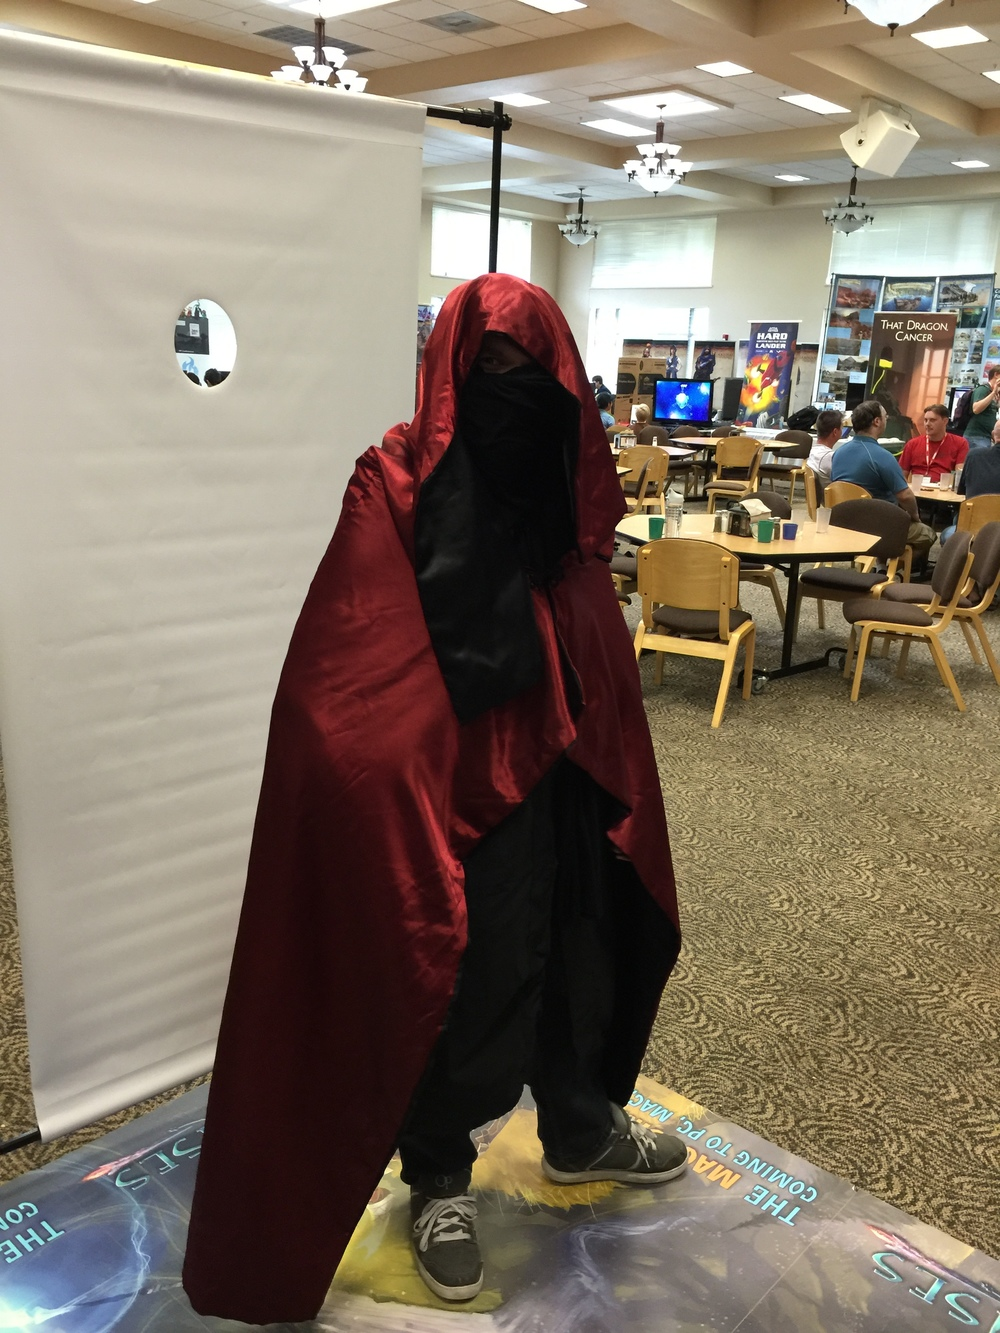 Our first Archmage cosplayer!  I was in total shock someone would dress up as the Archmage!